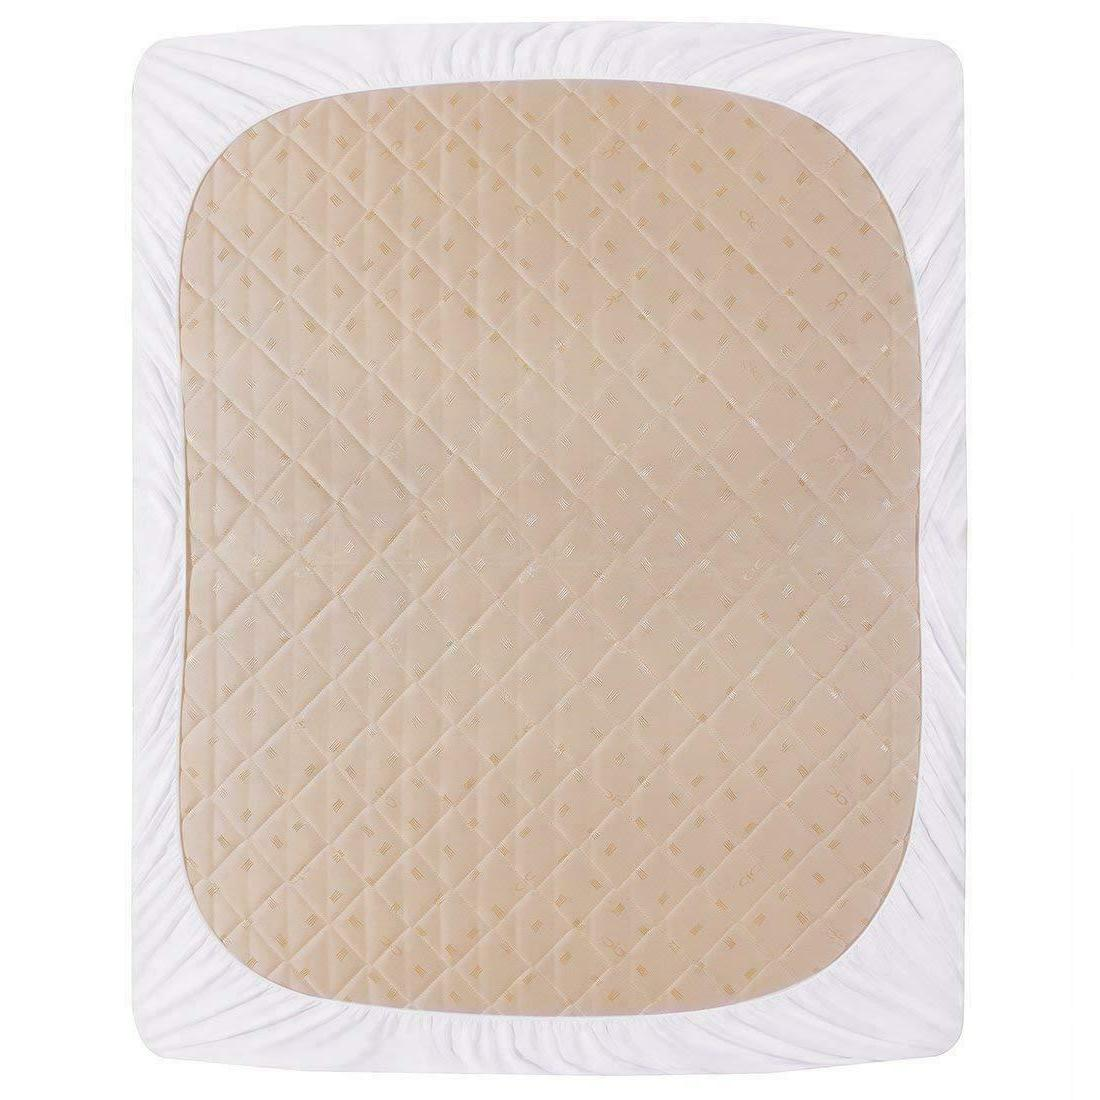 Cotton Pad Cover Topper Protector King